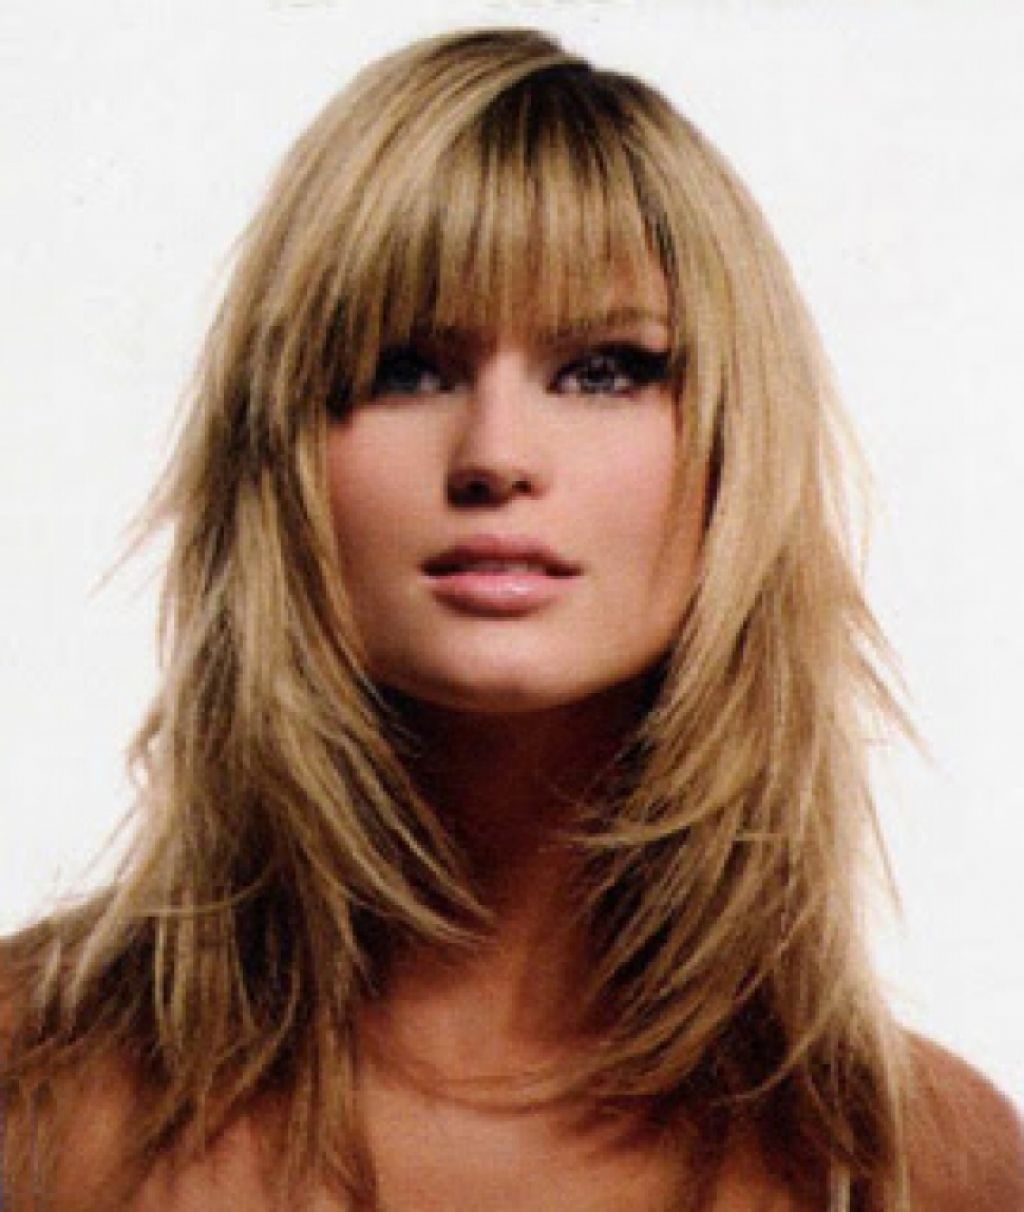 Long shaggy hairstyle cuts ideas for ladies hairstyle ideas for long shaggy hairstyle cuts ideas for ladies hairstyle ideas for urmus Image collections